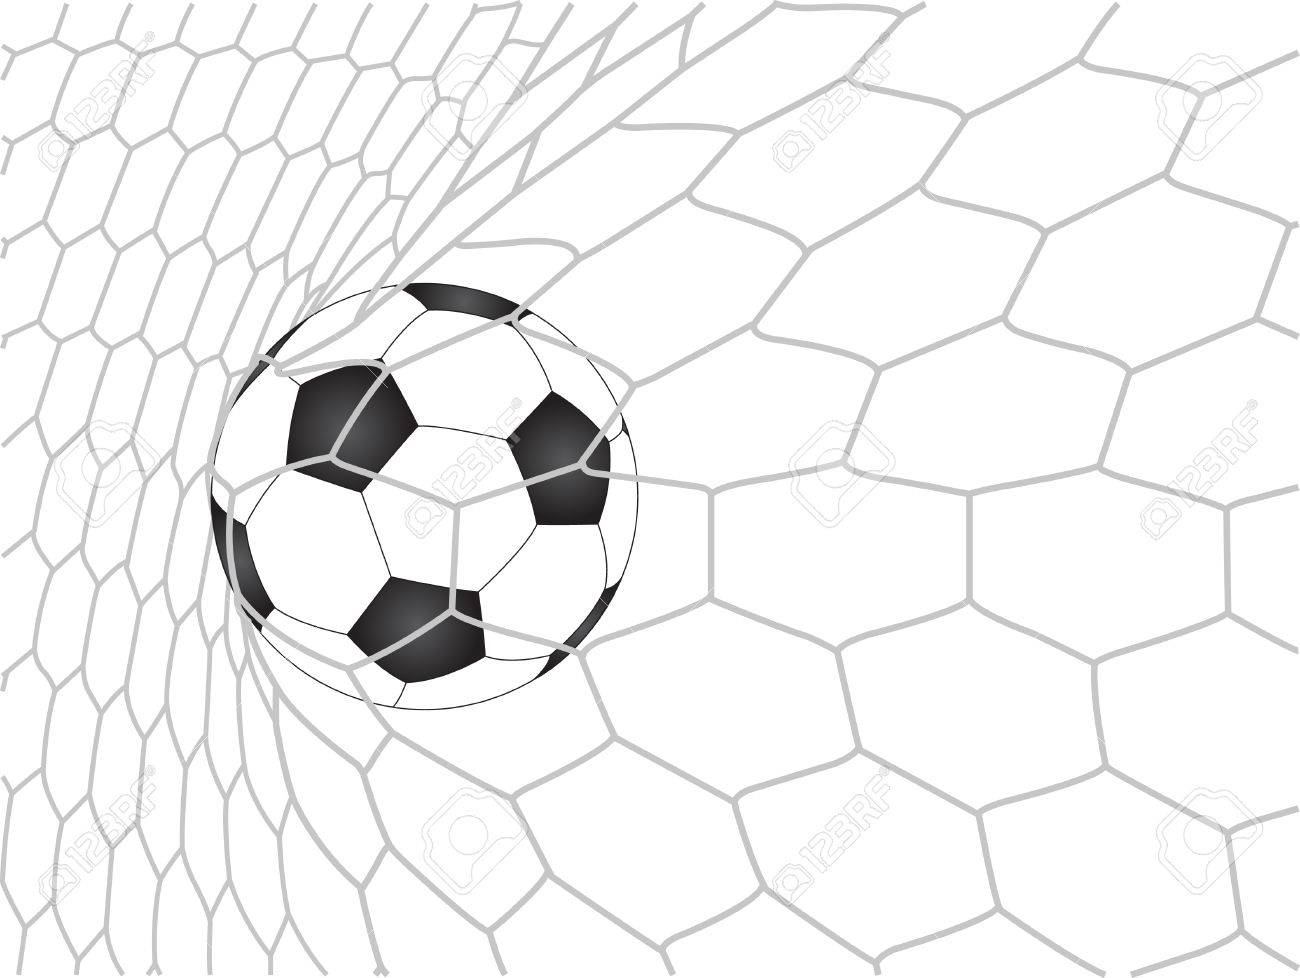 1300x978 Soccer Football In Goal Net Vector, Eps 10 Royalty Free Cliparts